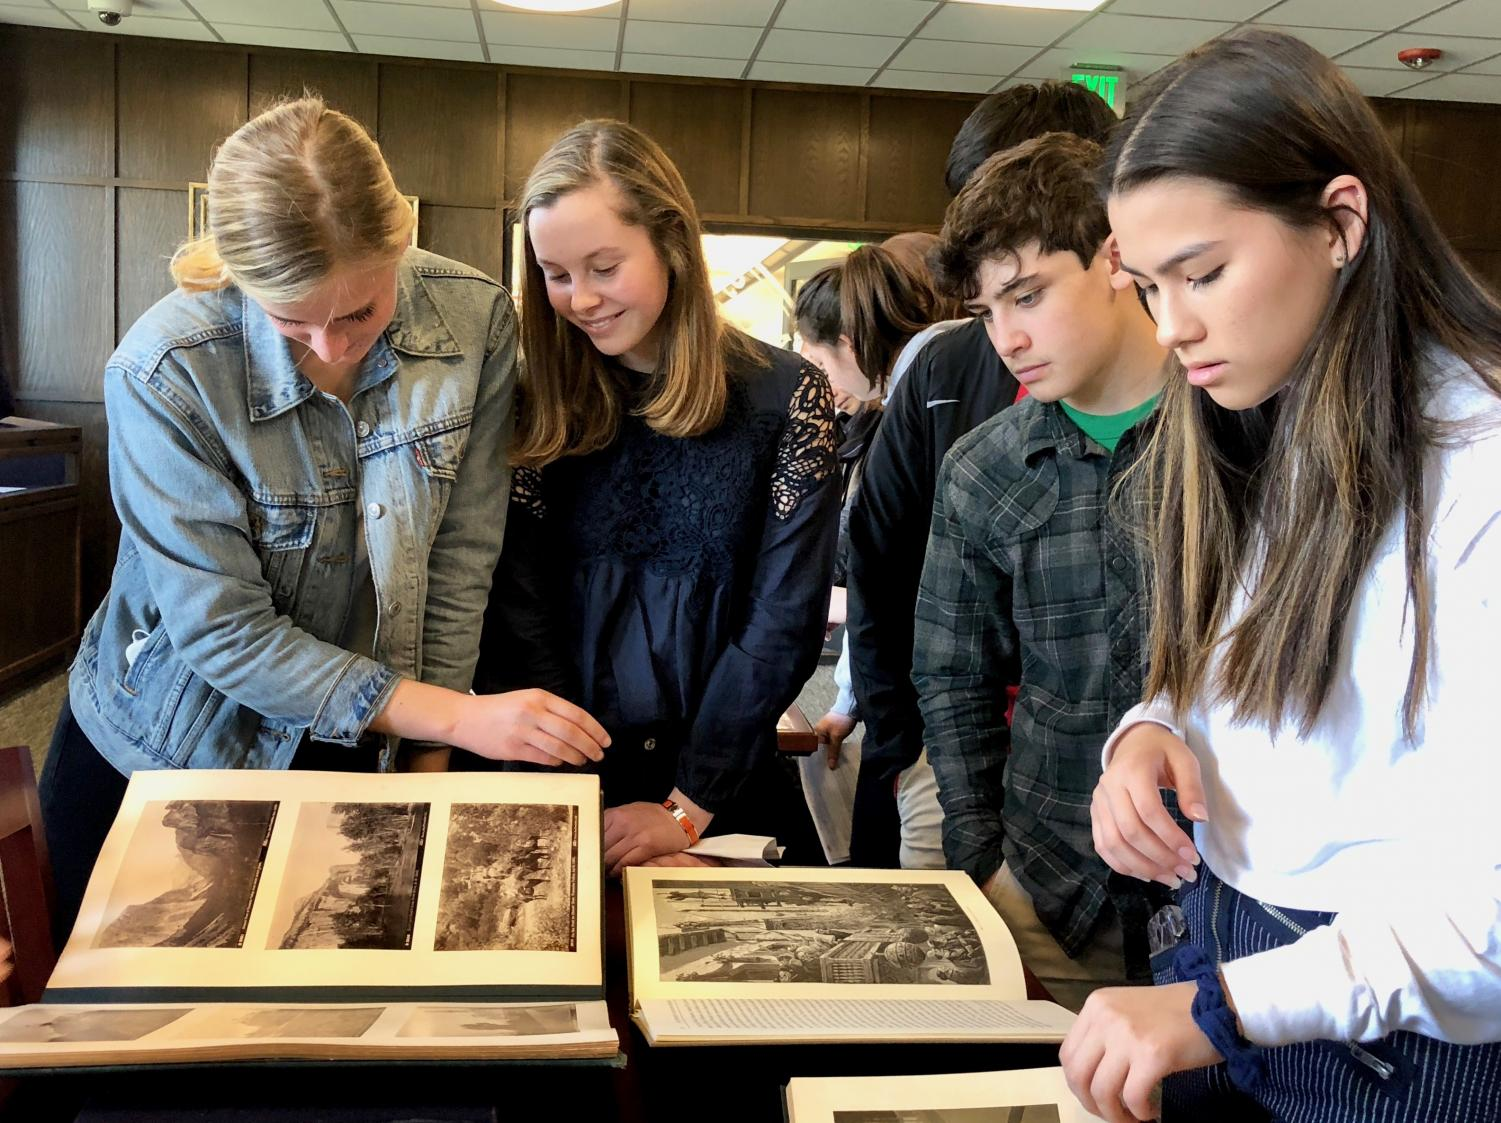 IB juniors visit University of San Francisco's rare book collection in the Gleeson Library. The collection houses items dating back to 15th century.